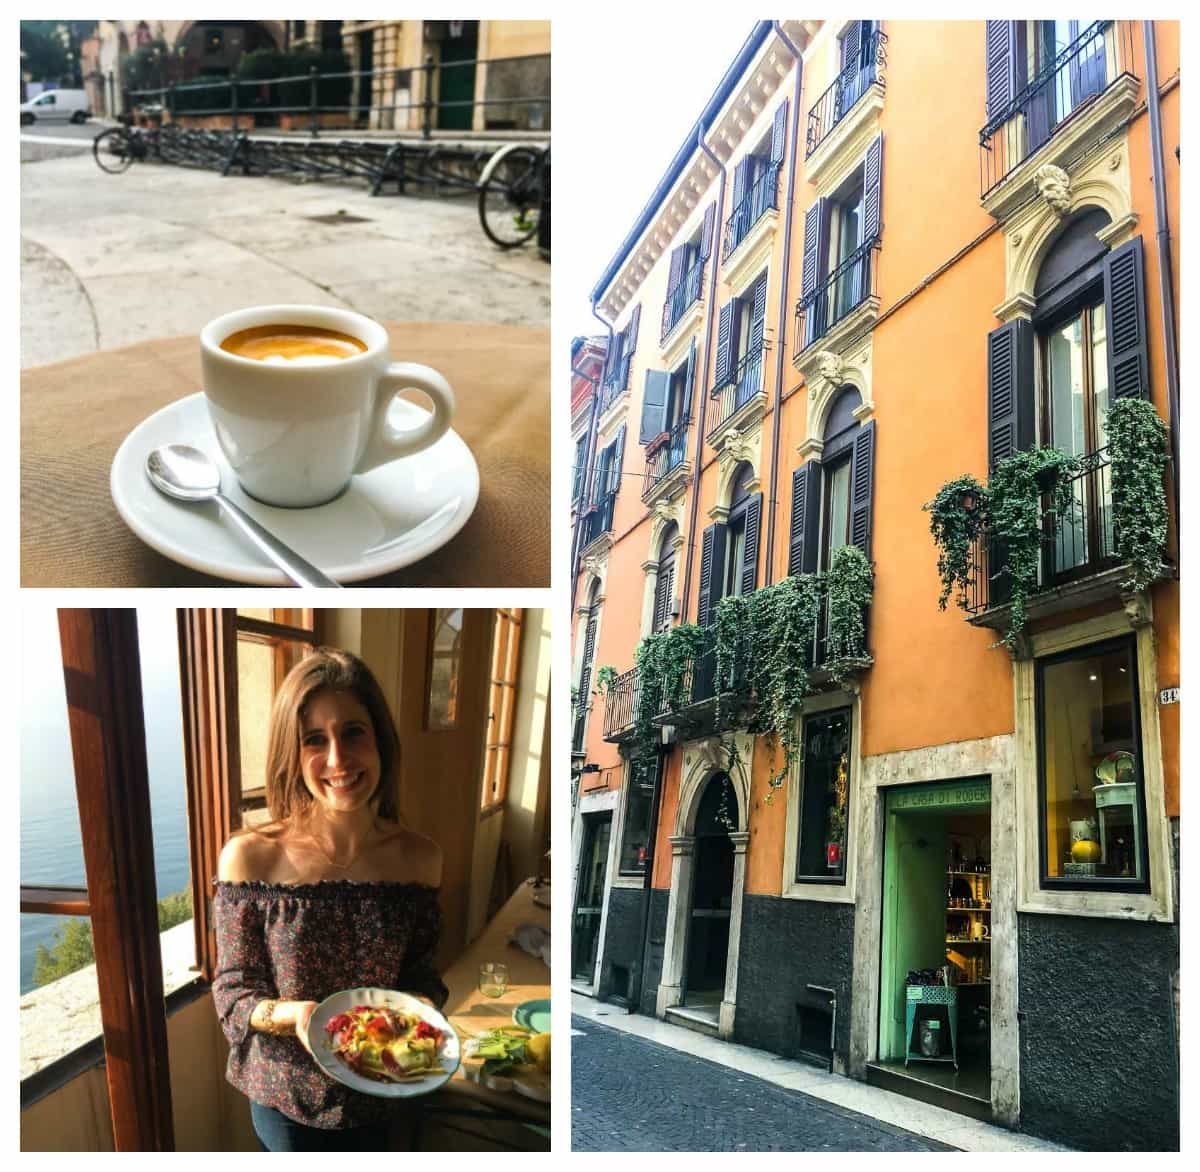 A collage of photos of a coffee mug on a table, Erin Clarke holding a plate of food, and a street from from Italy